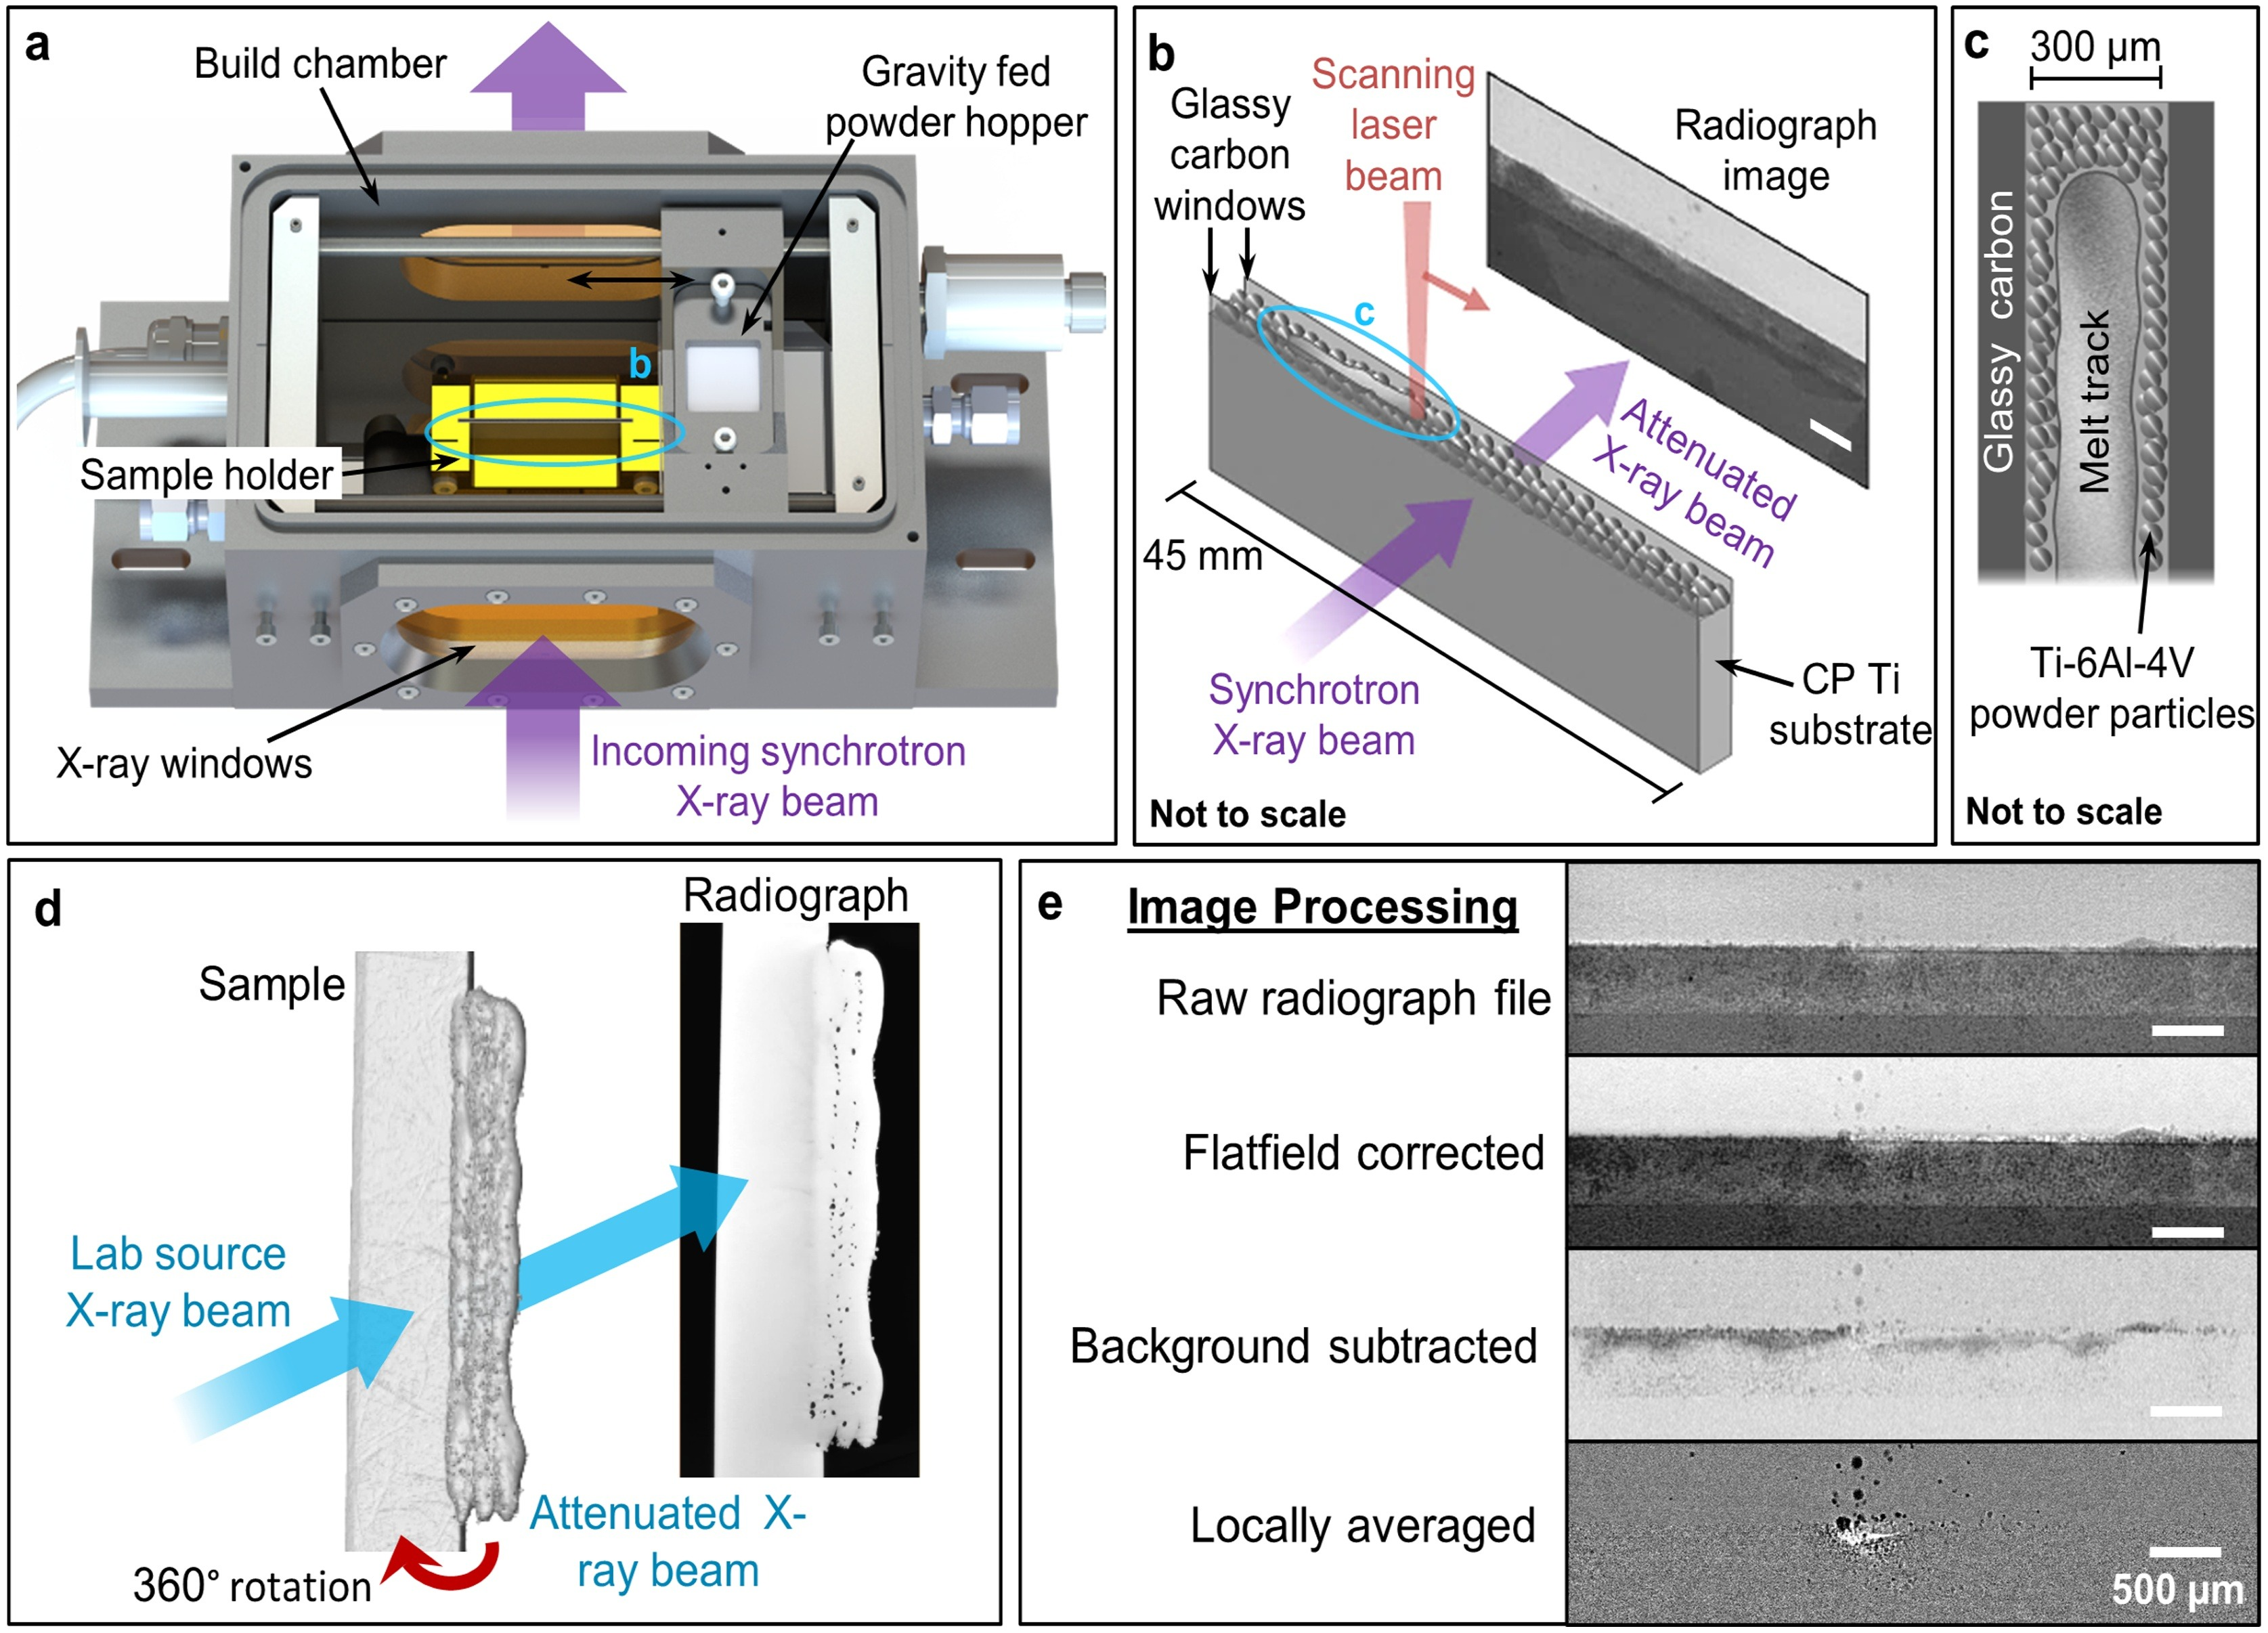 """a Experimental build chamber with key components labelled. b Simplified schematic of the sample holder during in-situ melting. c Schematic of the substrate and powder particles and melt track. d Schematic of μCT sample scans. e Image processing methods."" - ""a Experimental build chamber with key components labelled. b Simplified schematic of the sample holder during in-situ melting. c Schematic of the substrate and powder particles and melt track. d Schematic of μCT sample scans. e Image processing methods."" Reprinted from Additive Manufacturing, 36, Sinclair, L., Leung, C.L.A., Marussi, S., Clark, S.J., Chen, Y., Olbinado, M.P., Rack, A., Gardy, J., Baxter, G.J., Lee, P.D., In-situ radiographic and ex-situ tomographic analysis of pore interactions during multilayer builds in laser powder bed fusion, 101512., Copyright (2020), with permission from Elsevier."